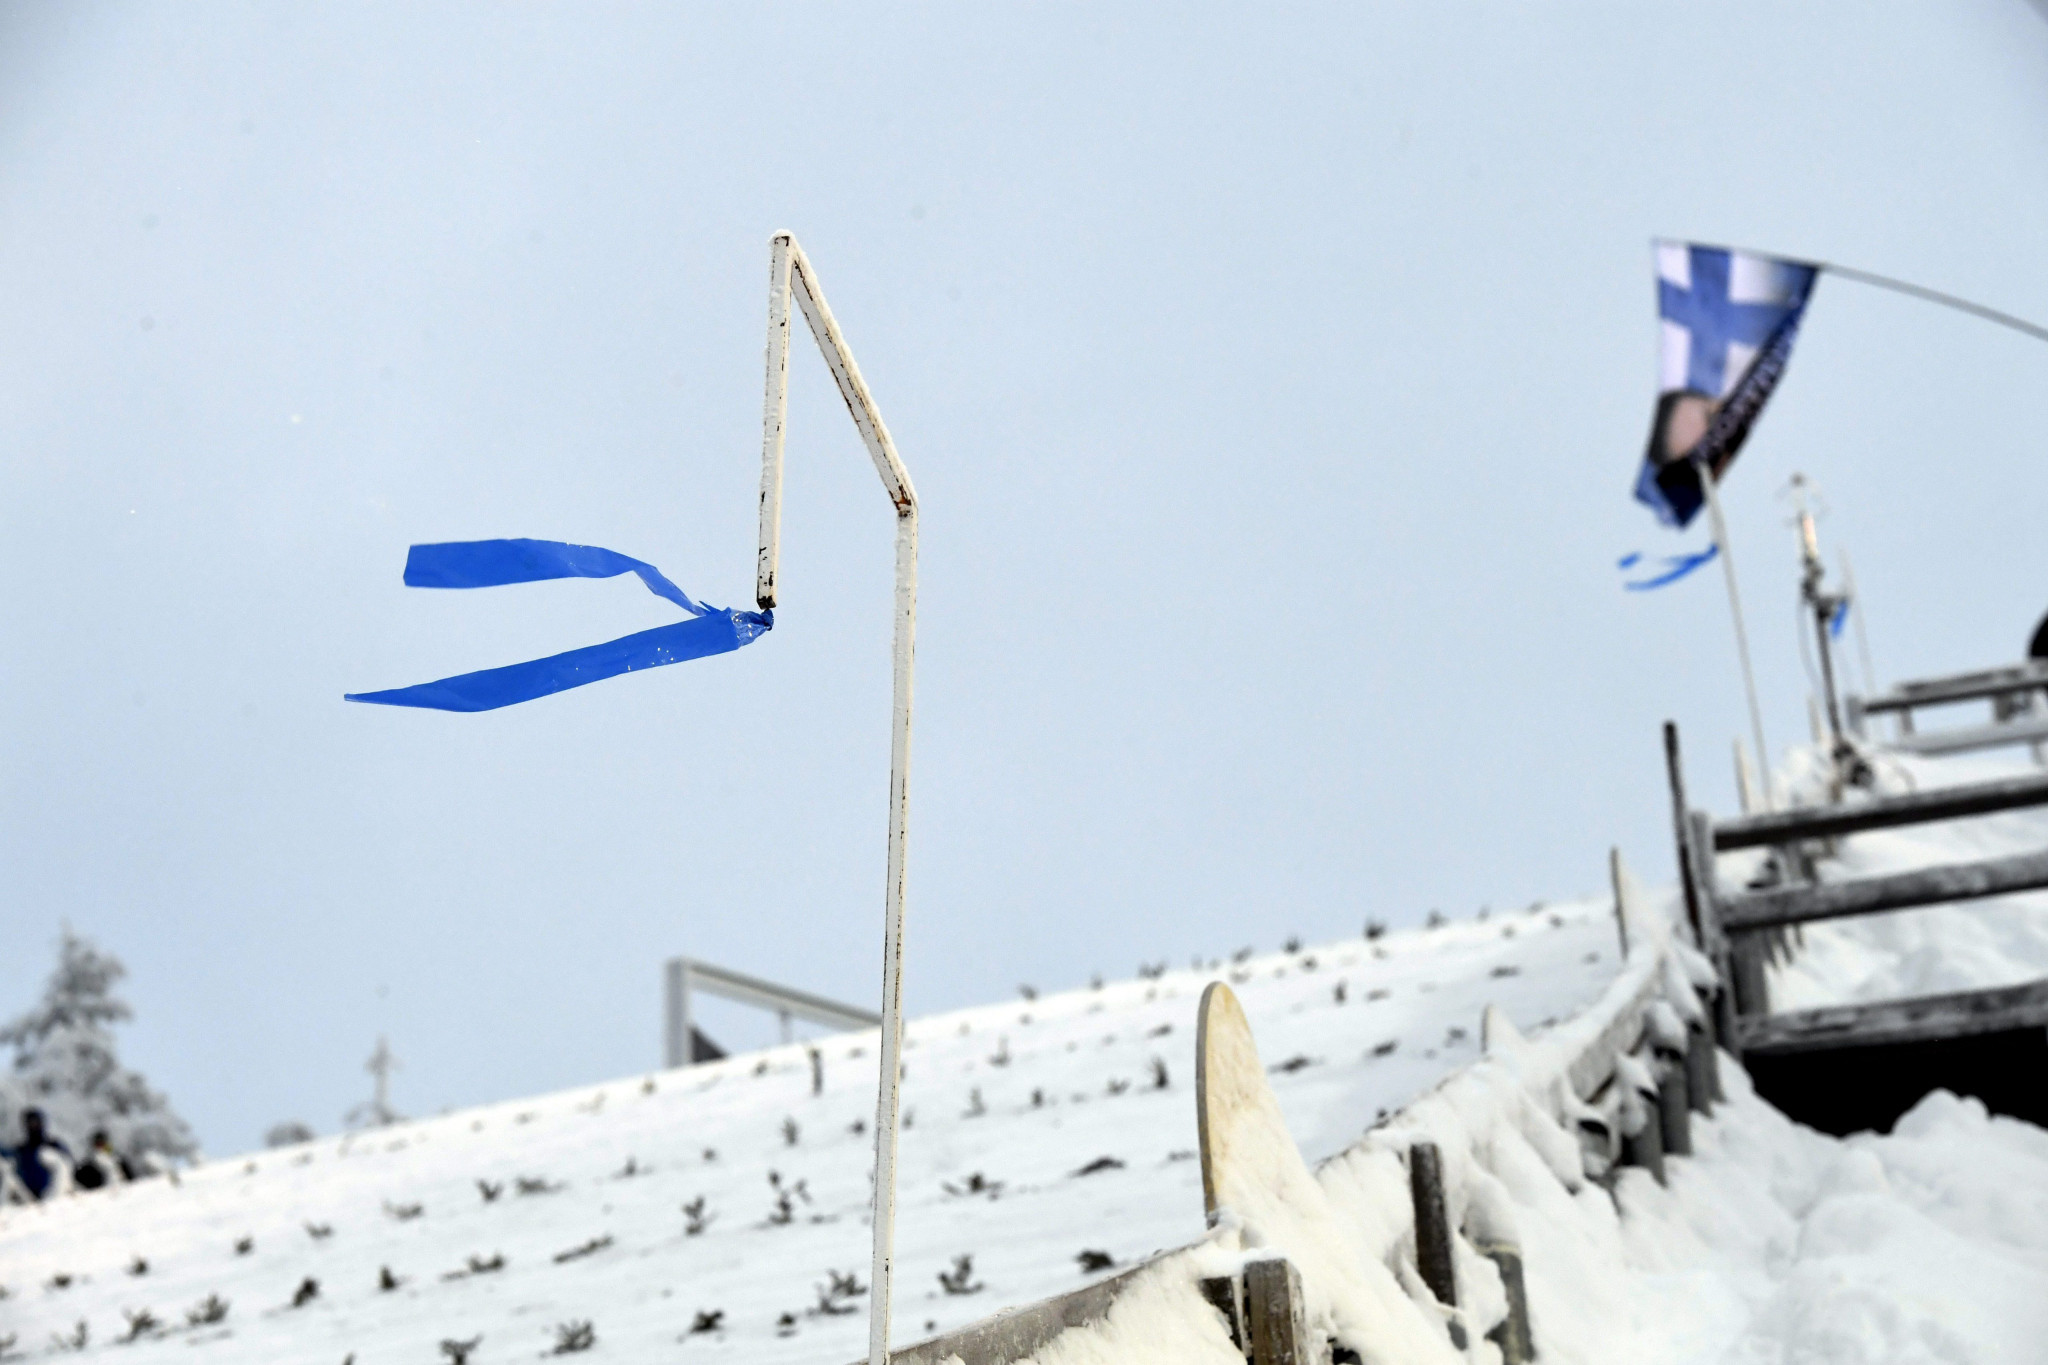 Wind conditions force cancellation of second FIS Ski Jumping World Cup event in Ruka